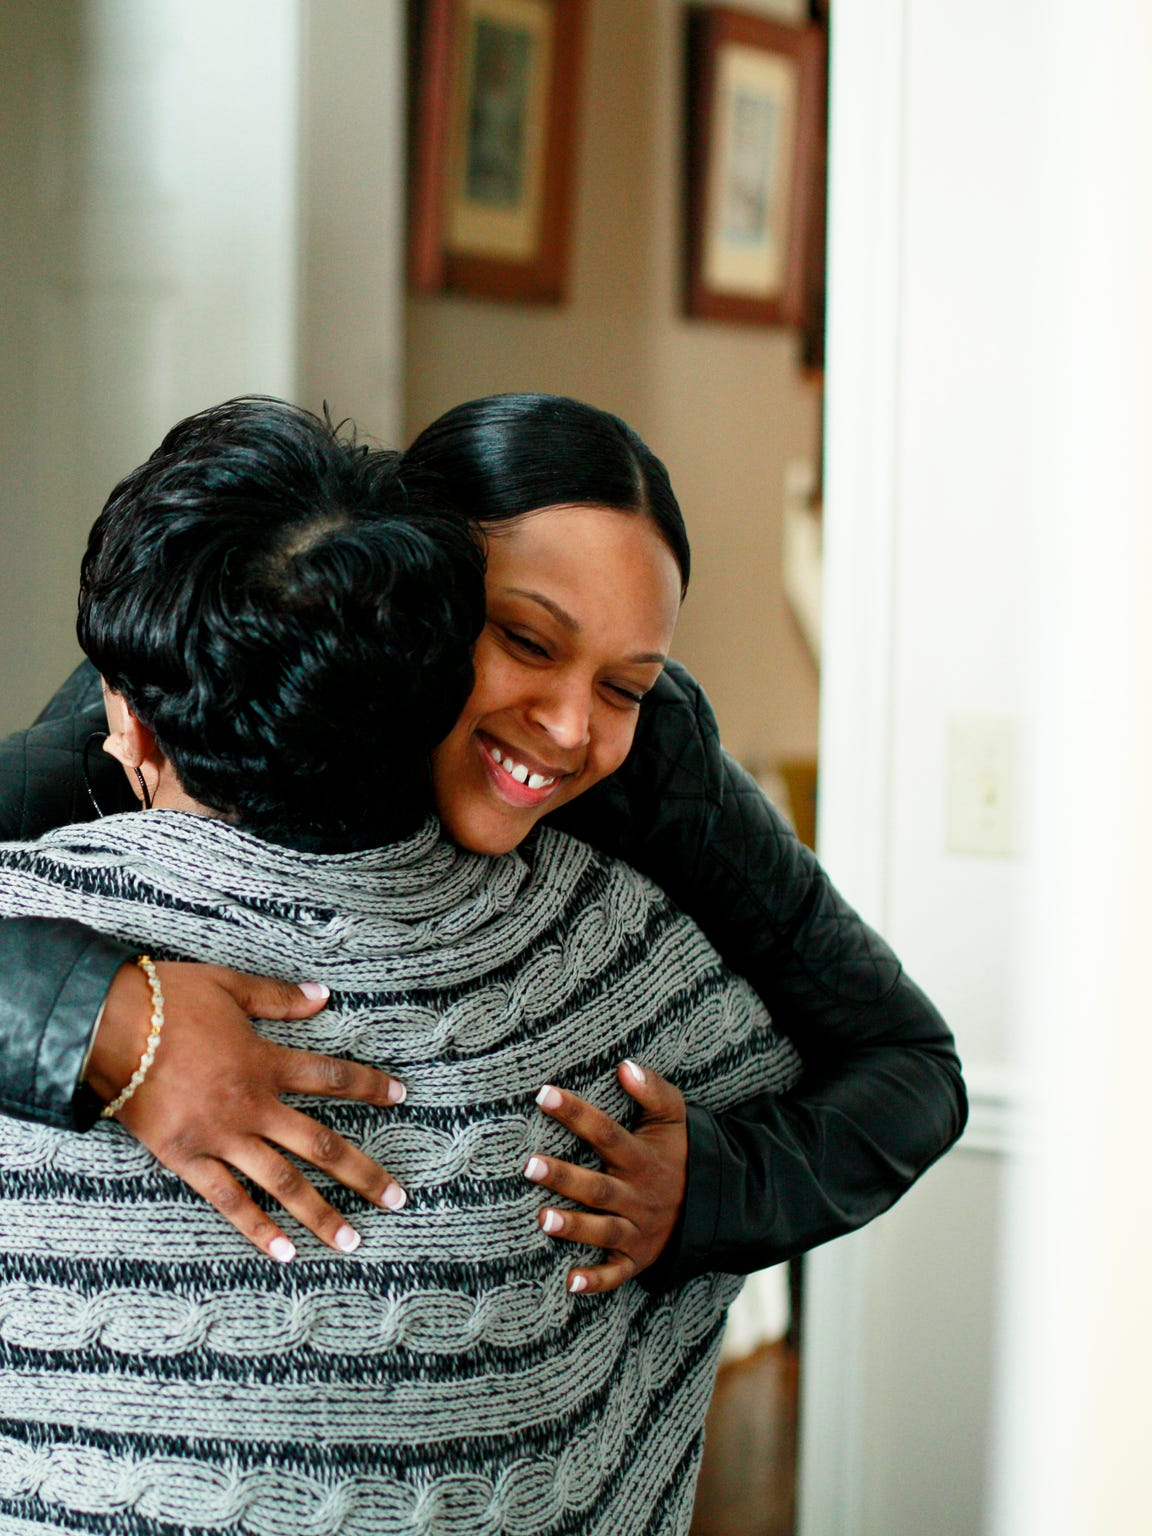 Sudana Wilmott hugs T-Ann Johnson who is helping her work to improve her life and set new goals for the future.